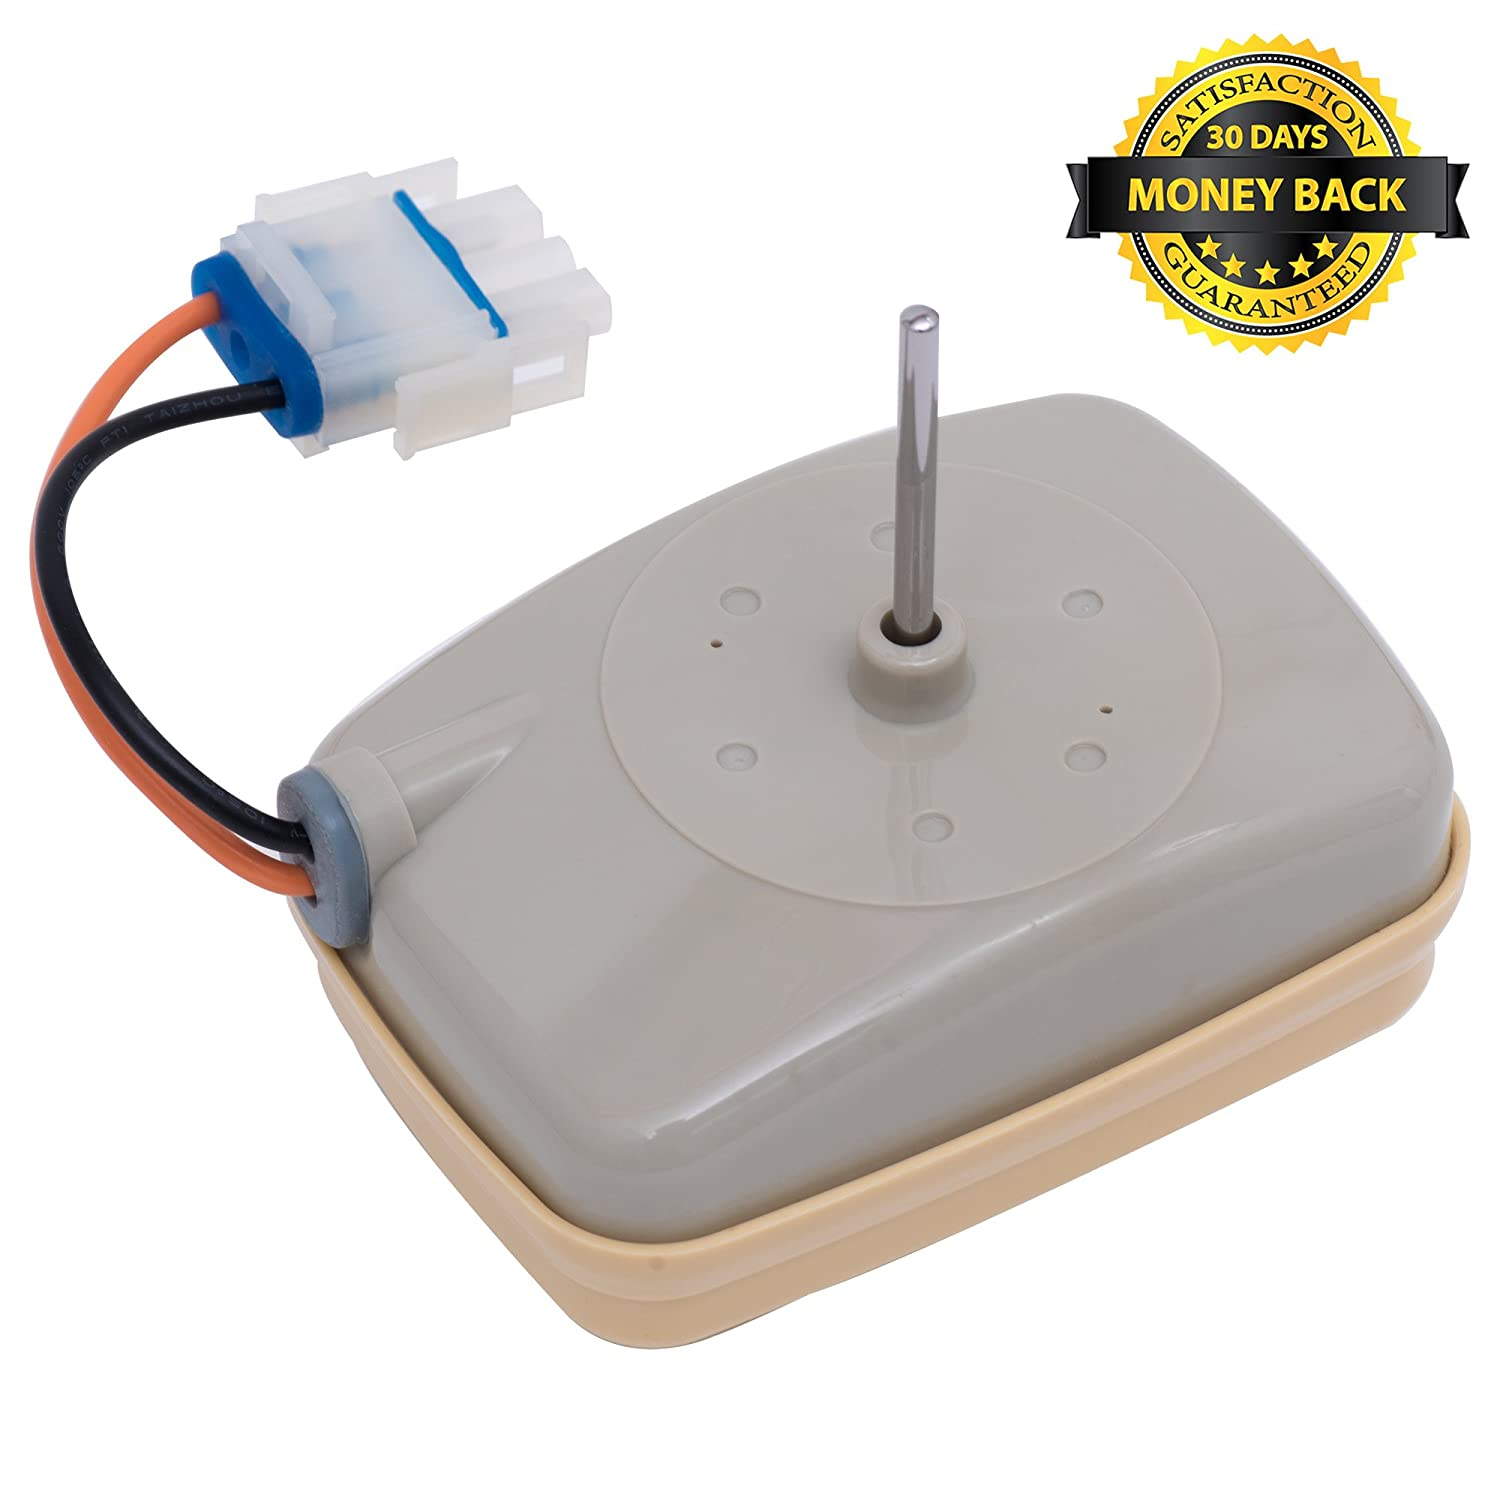 Replaces WR60x10138 WR60x10346 AP5955766 PS10063450 WR60X23584 BlueStars Exact Fit for GE /& Hotpoint Refrigerator Ultra Durable WR60X10141 Refrigerator Evaporator Fan Motor Replacement by Blue Stars